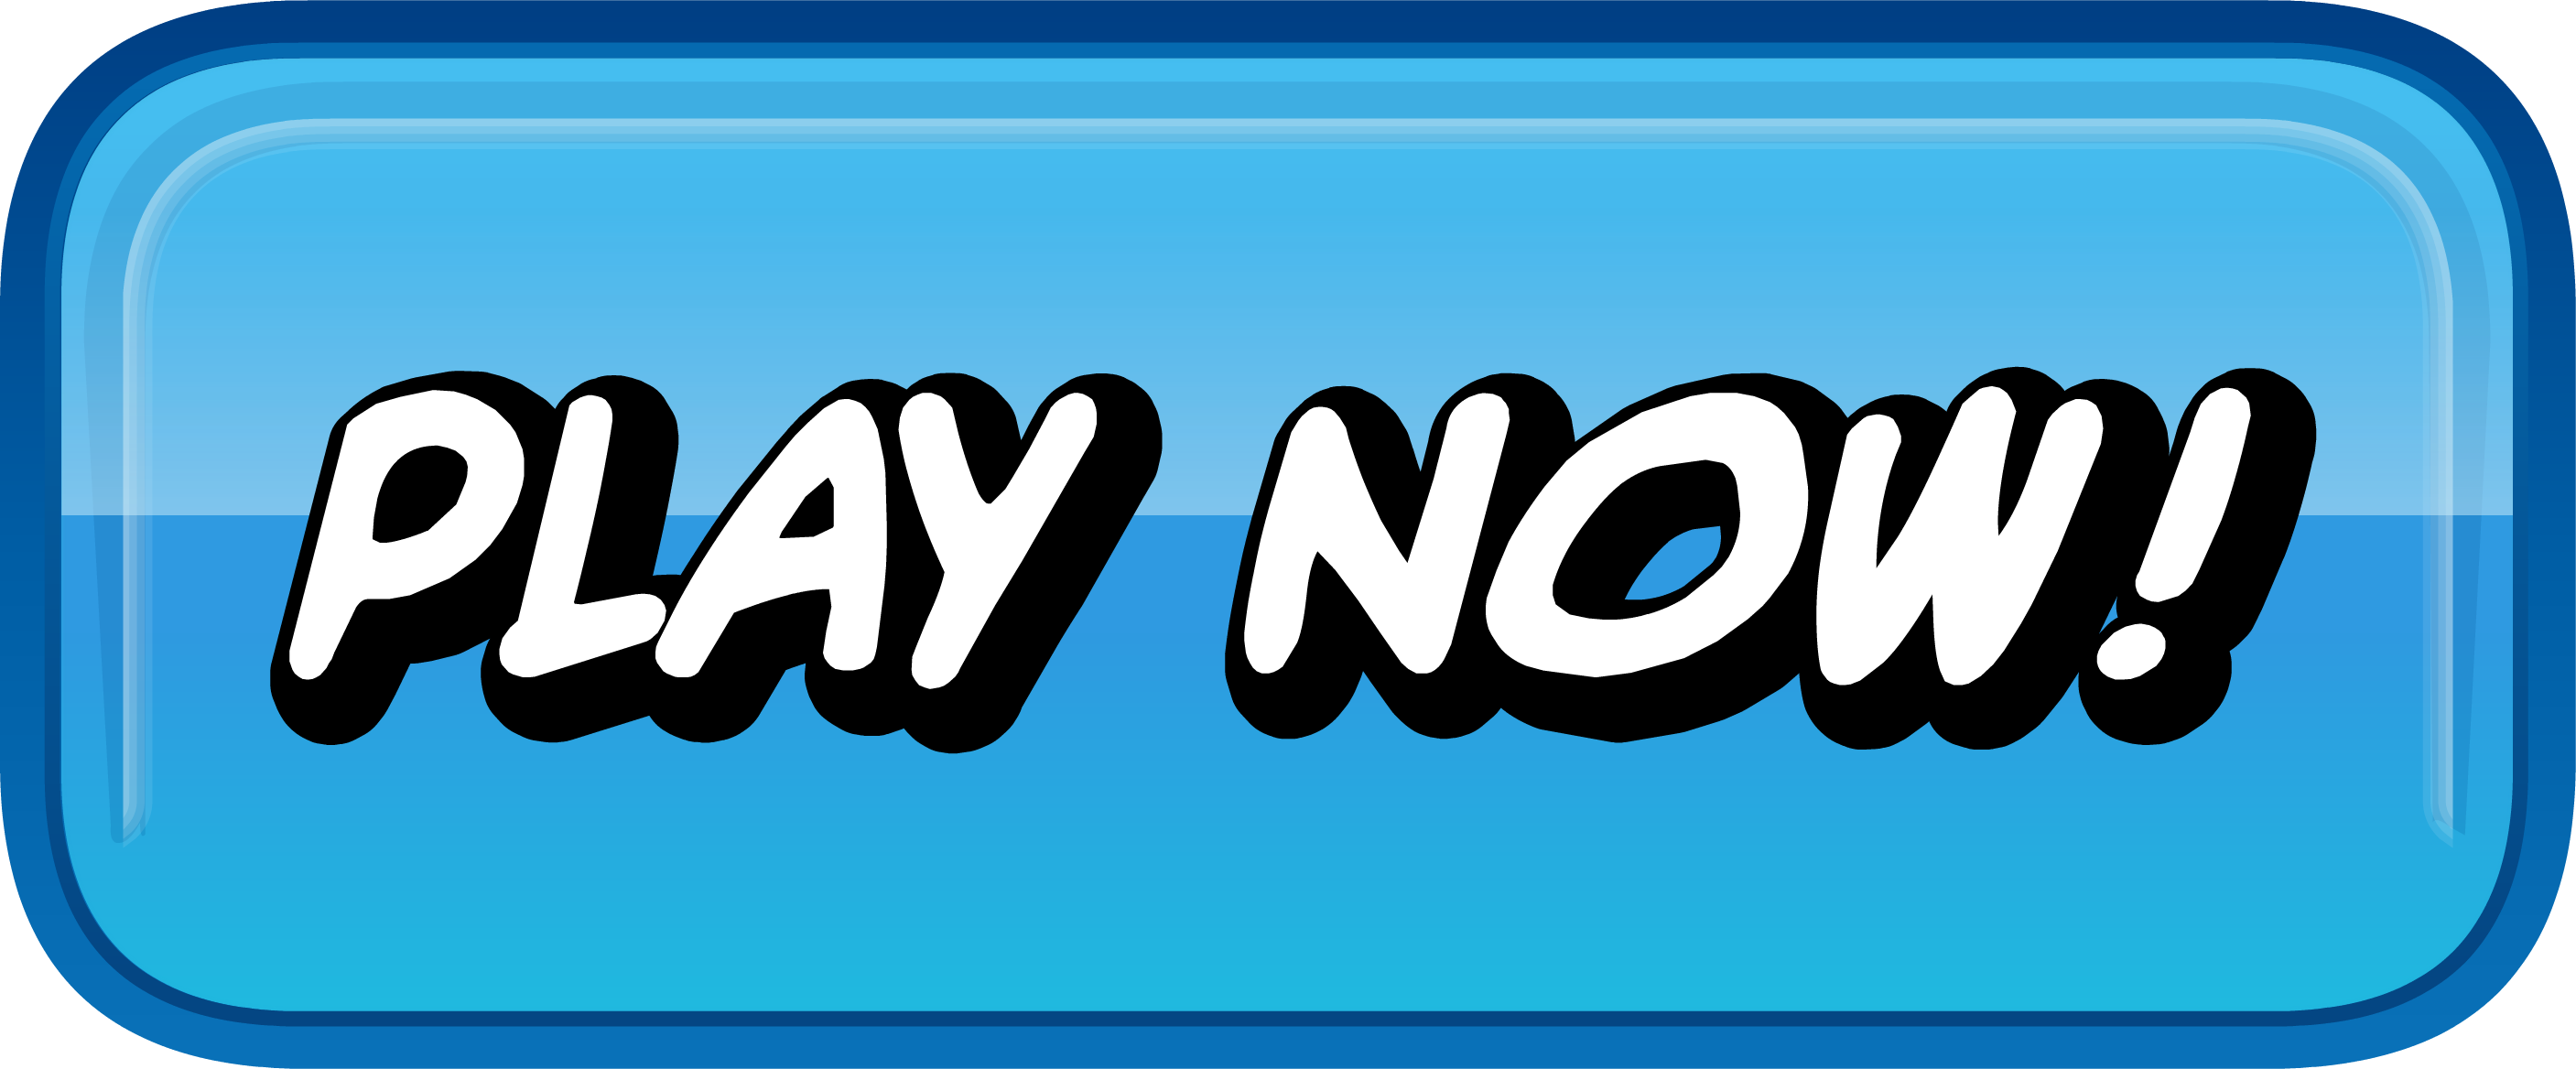 Caribbean Holidays Online Slot | PLAY NOW | StarGames Casino